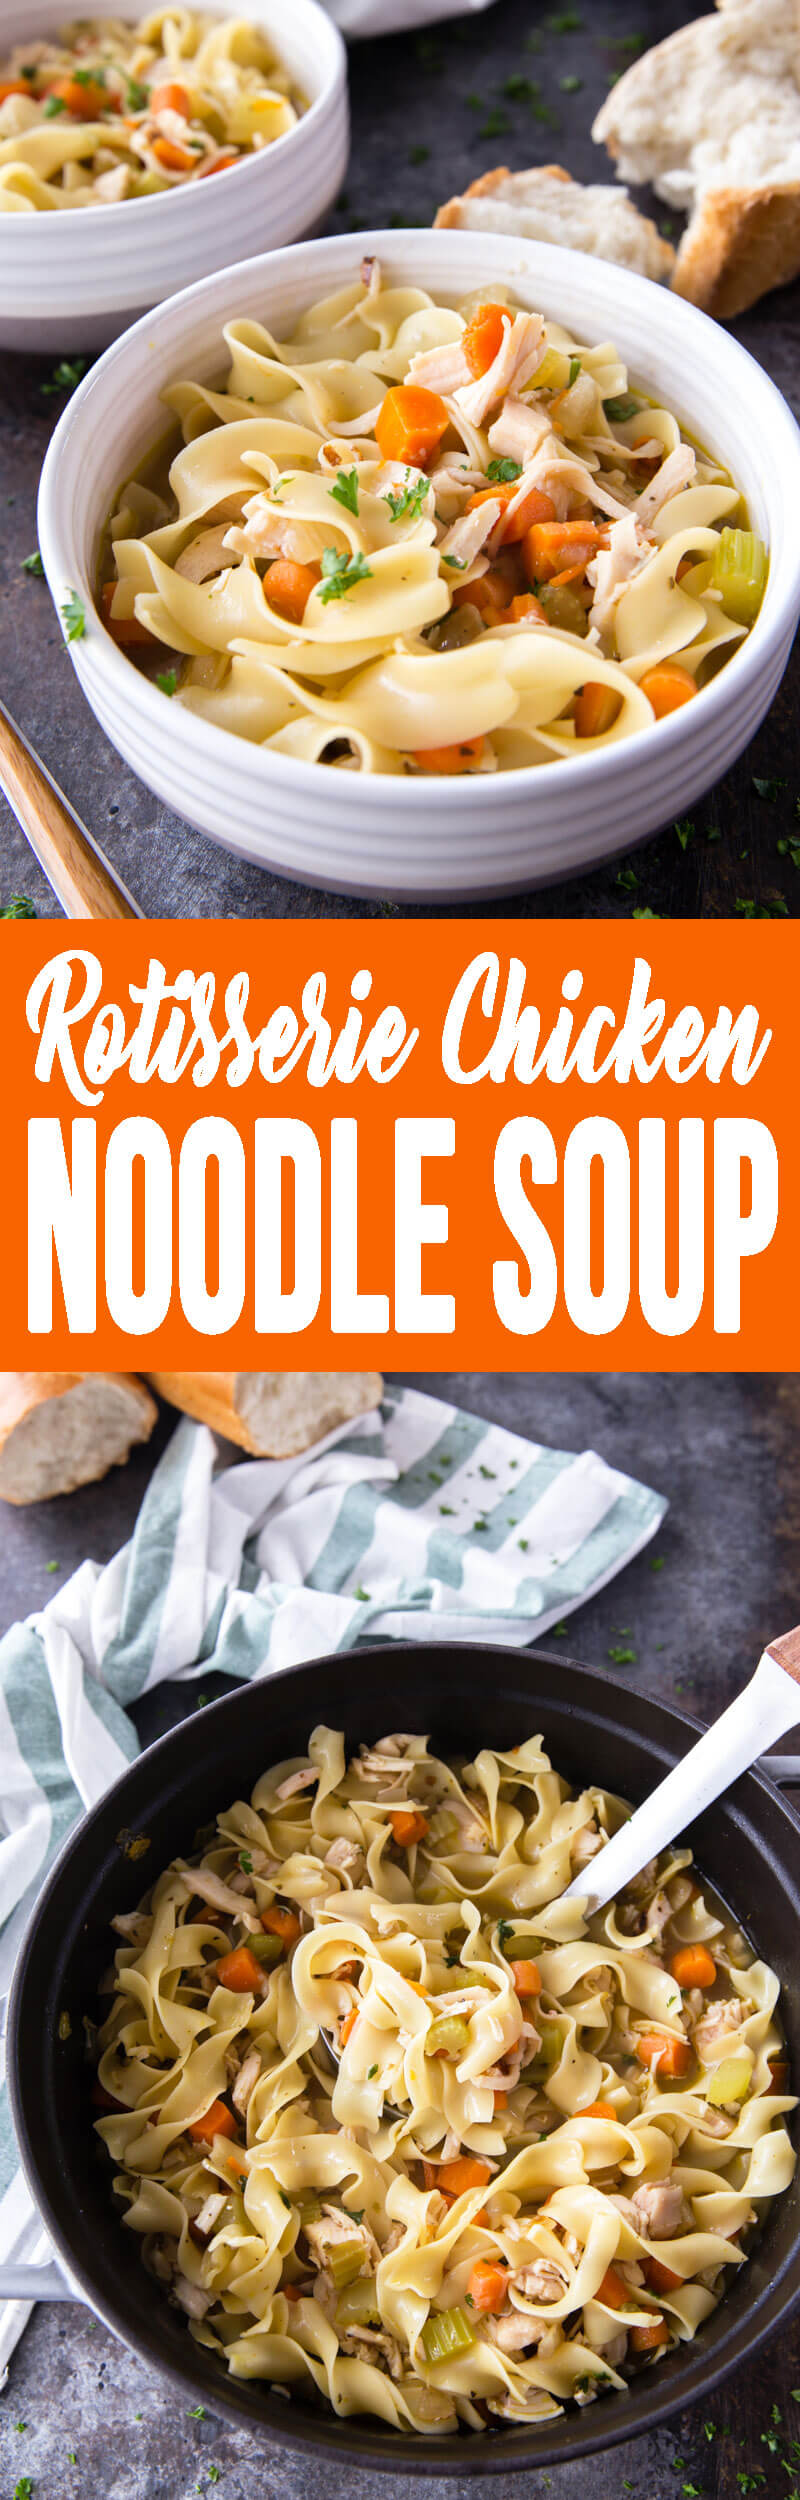 Delicious rotisserie chicken noodle soup is easy to make